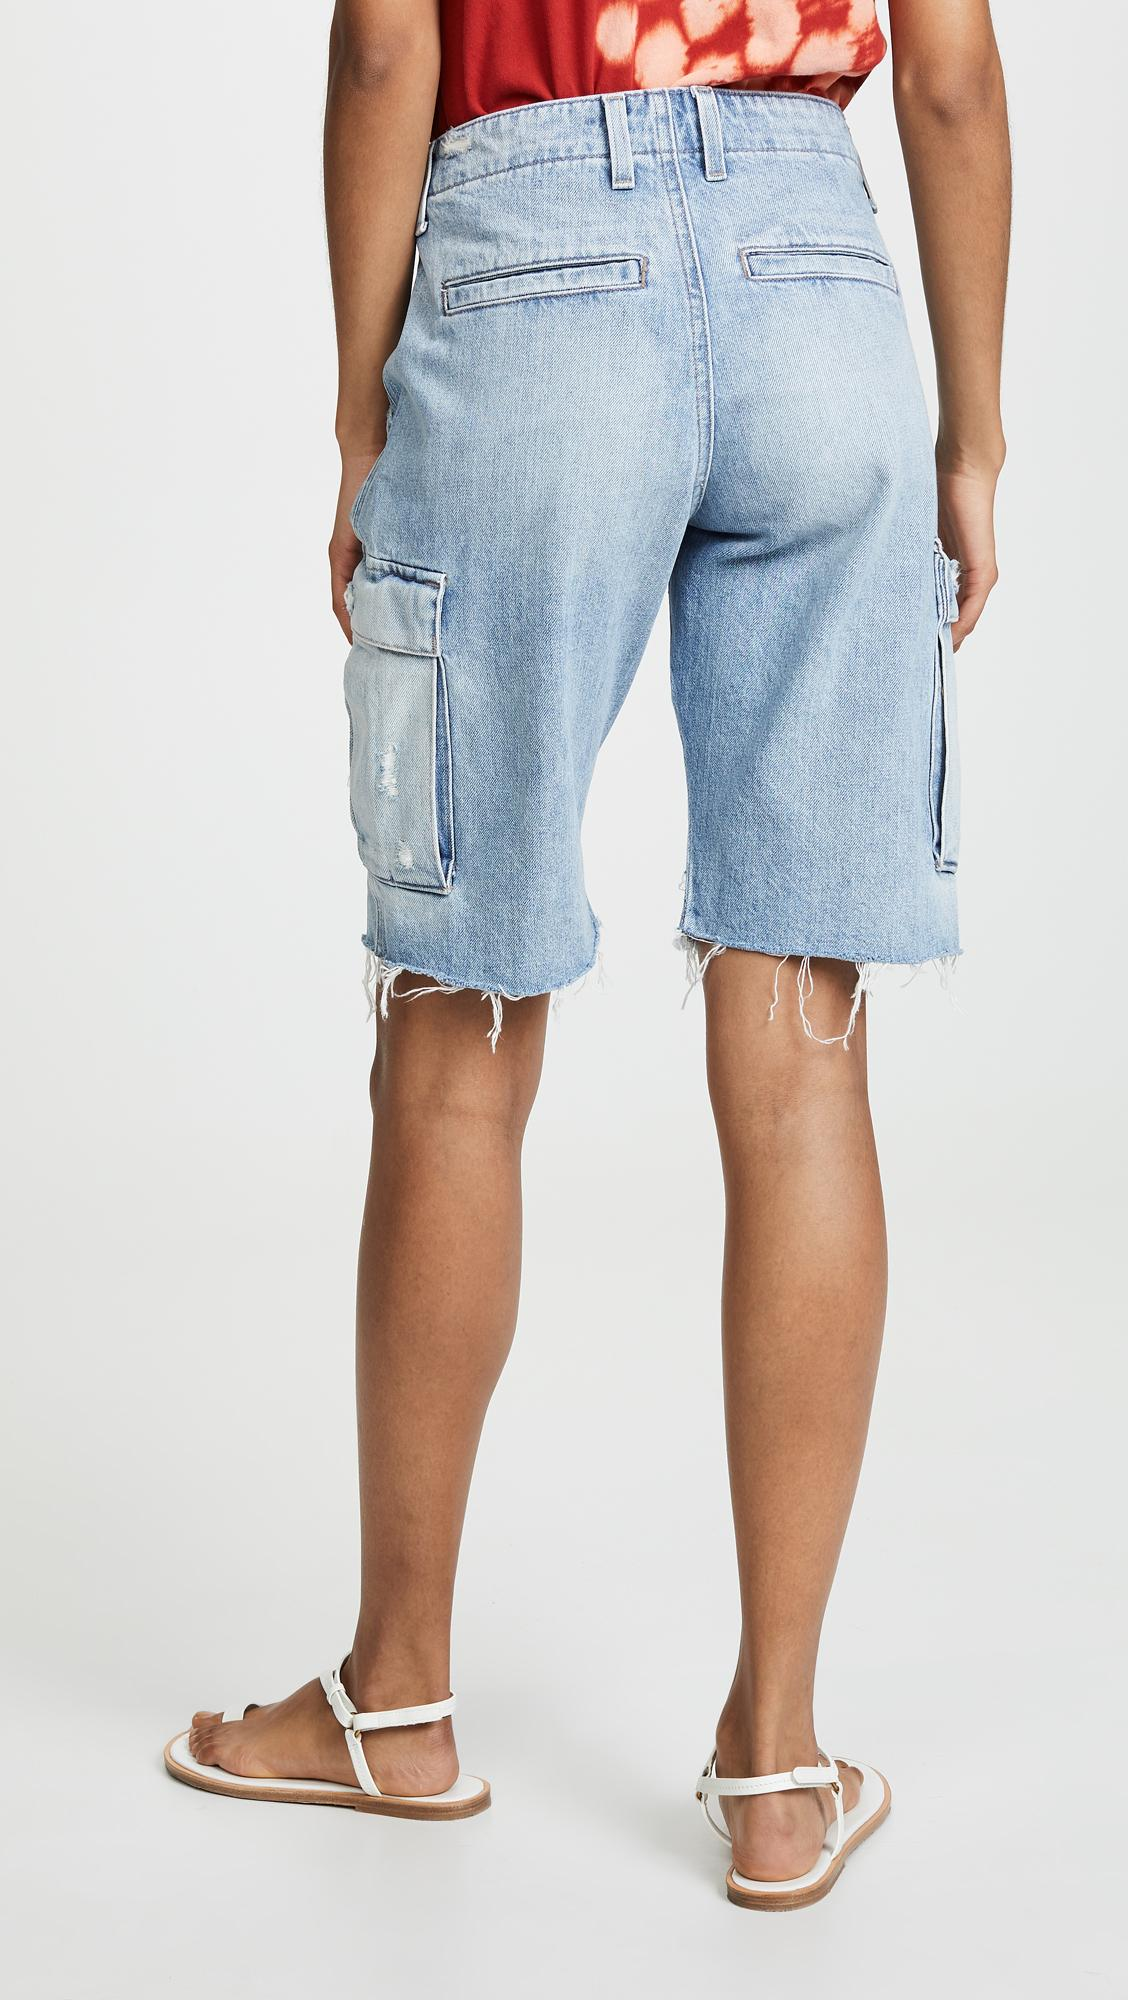 561408e417 Hudson Jeans Jane Relaxed Cargo Shorts in Blue - Lyst